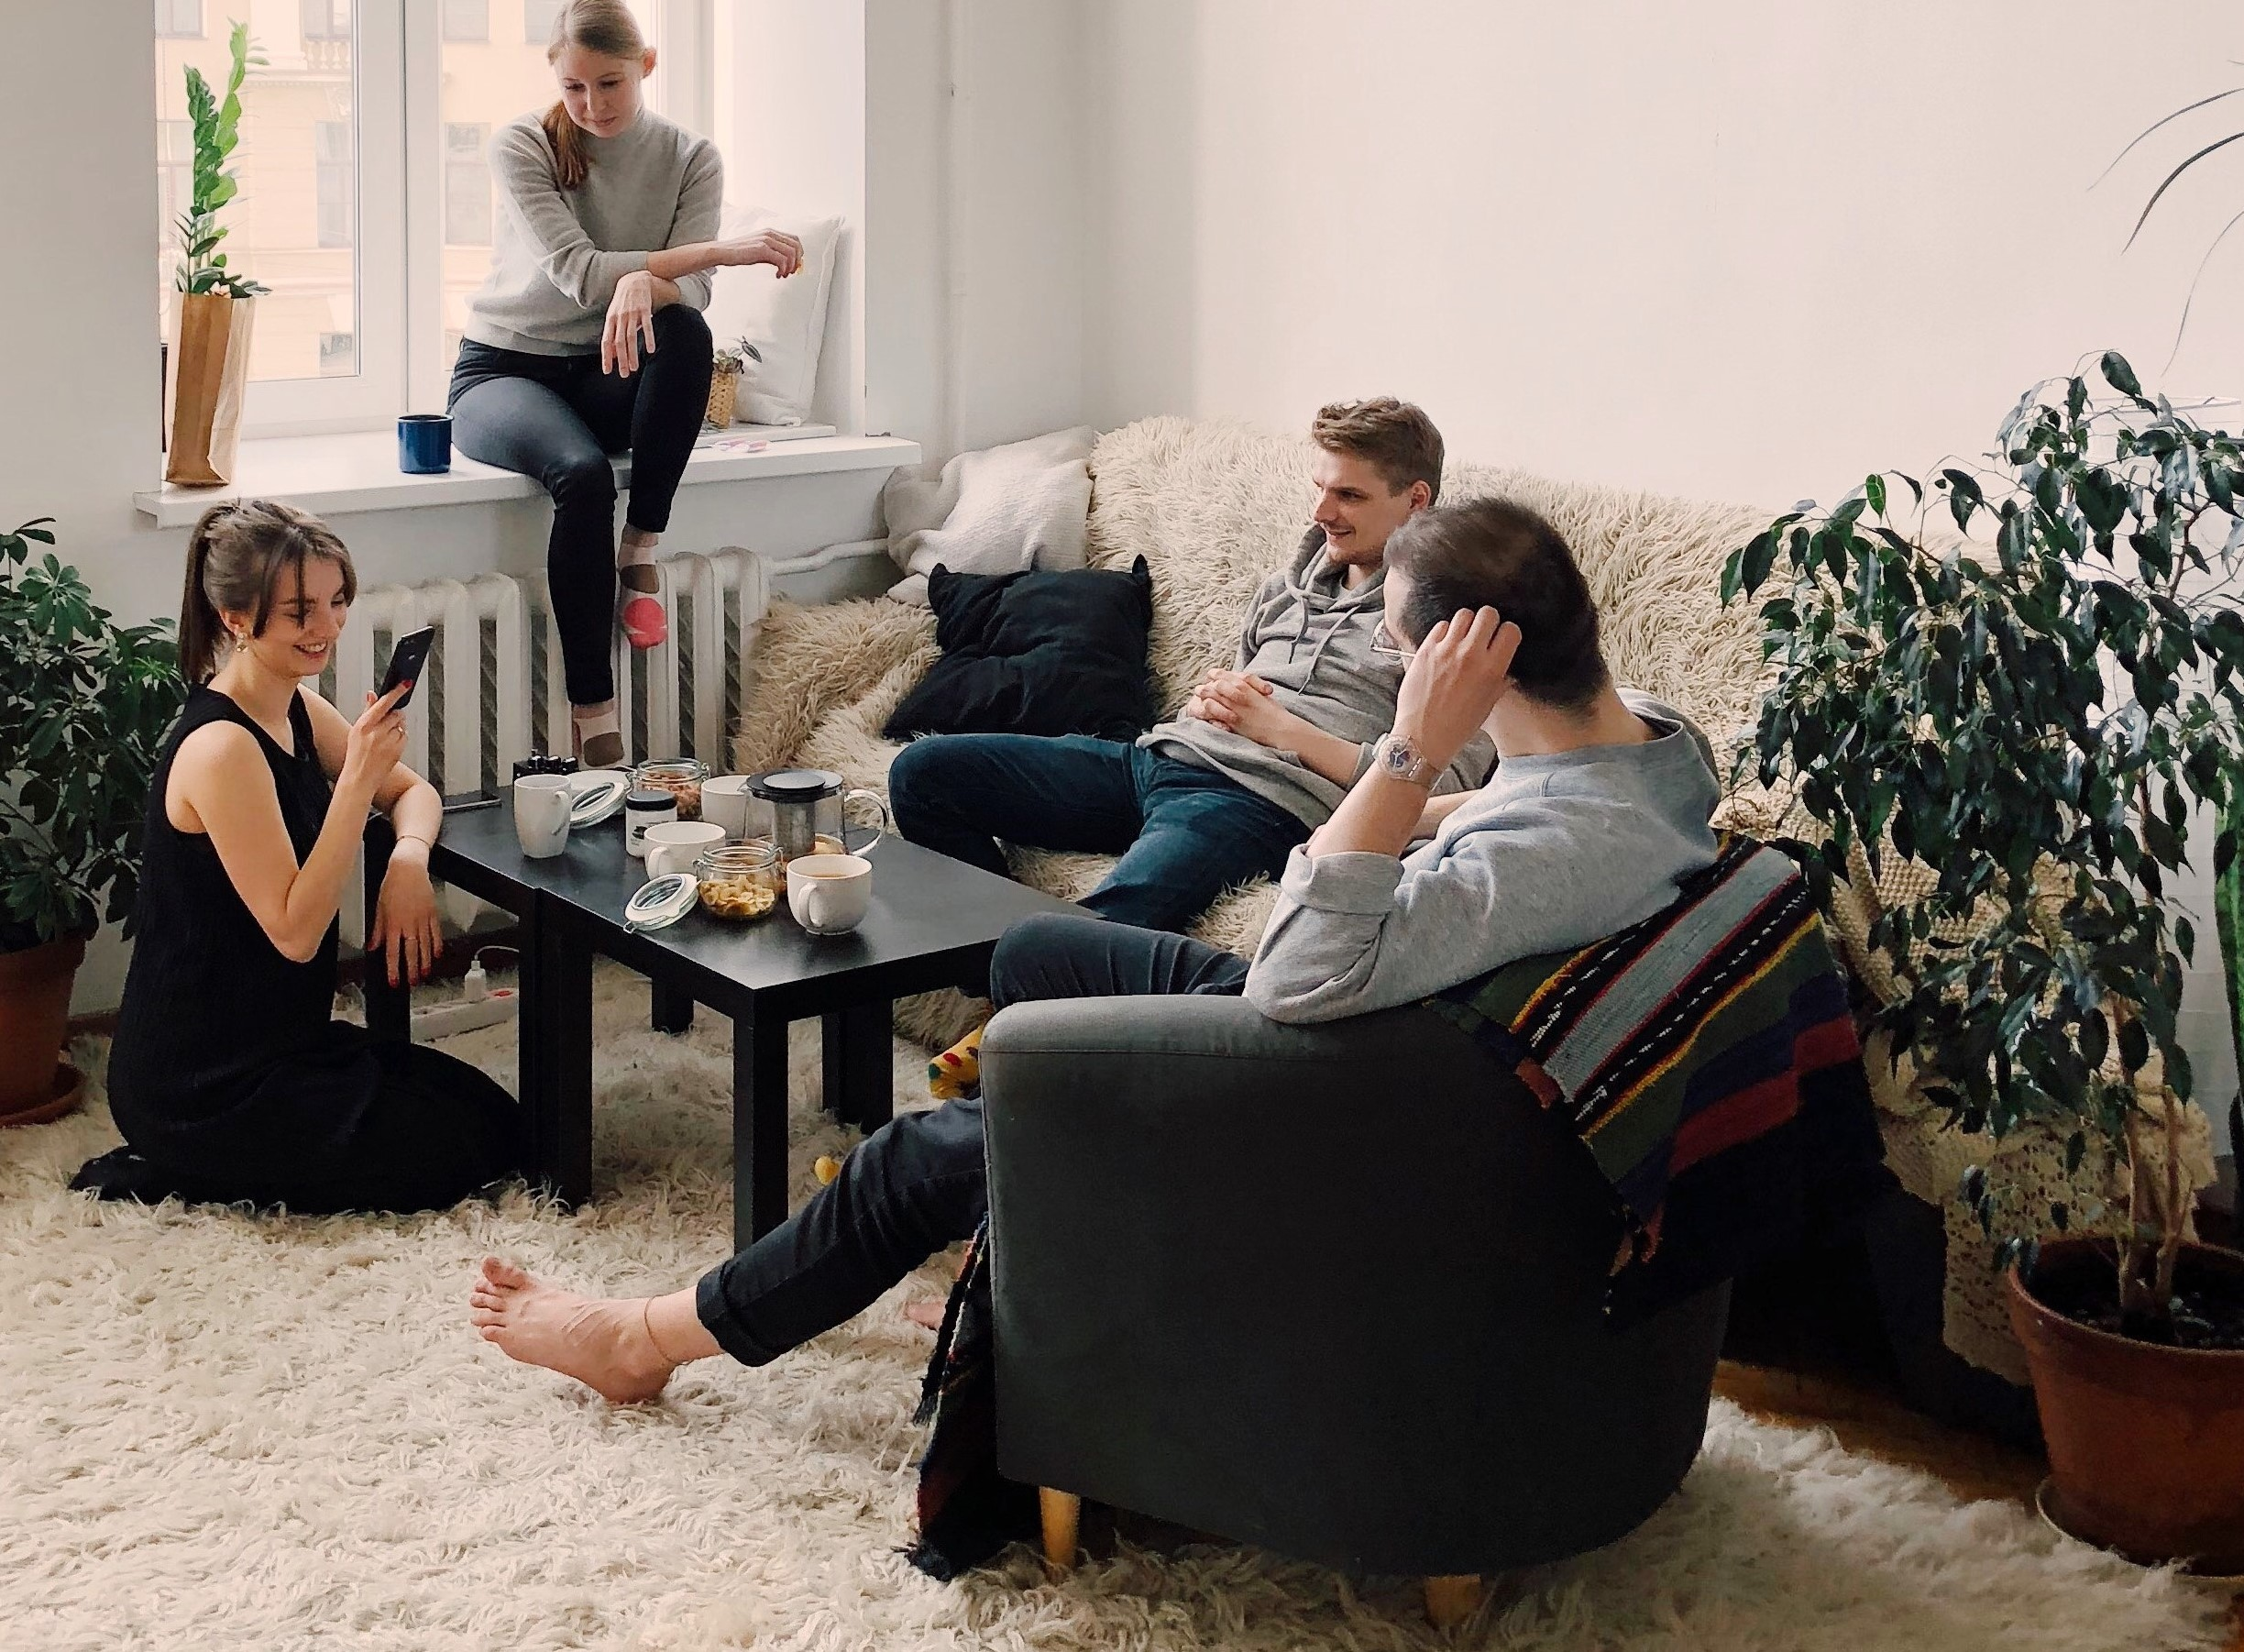 Young people hanging out in a living room